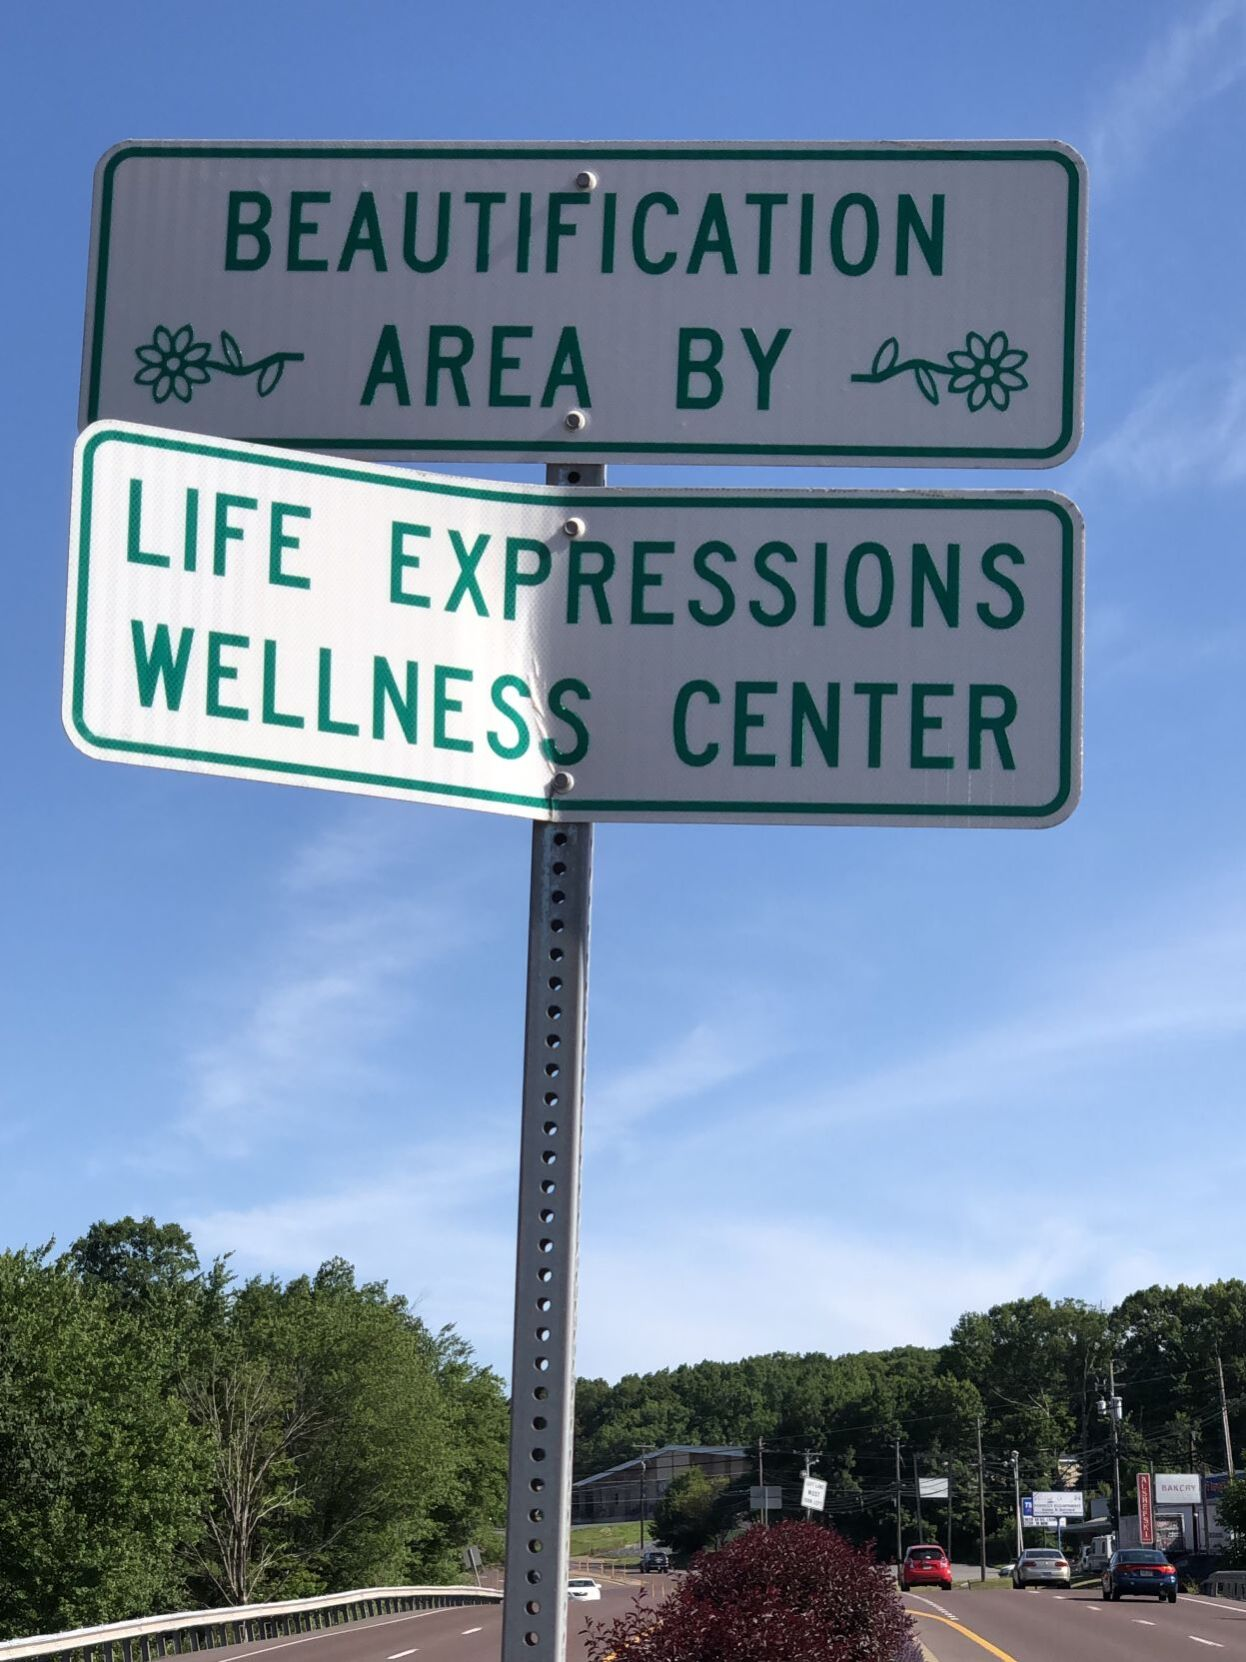 Sign says Life Expressions Wellness Center keeps highway beautiful